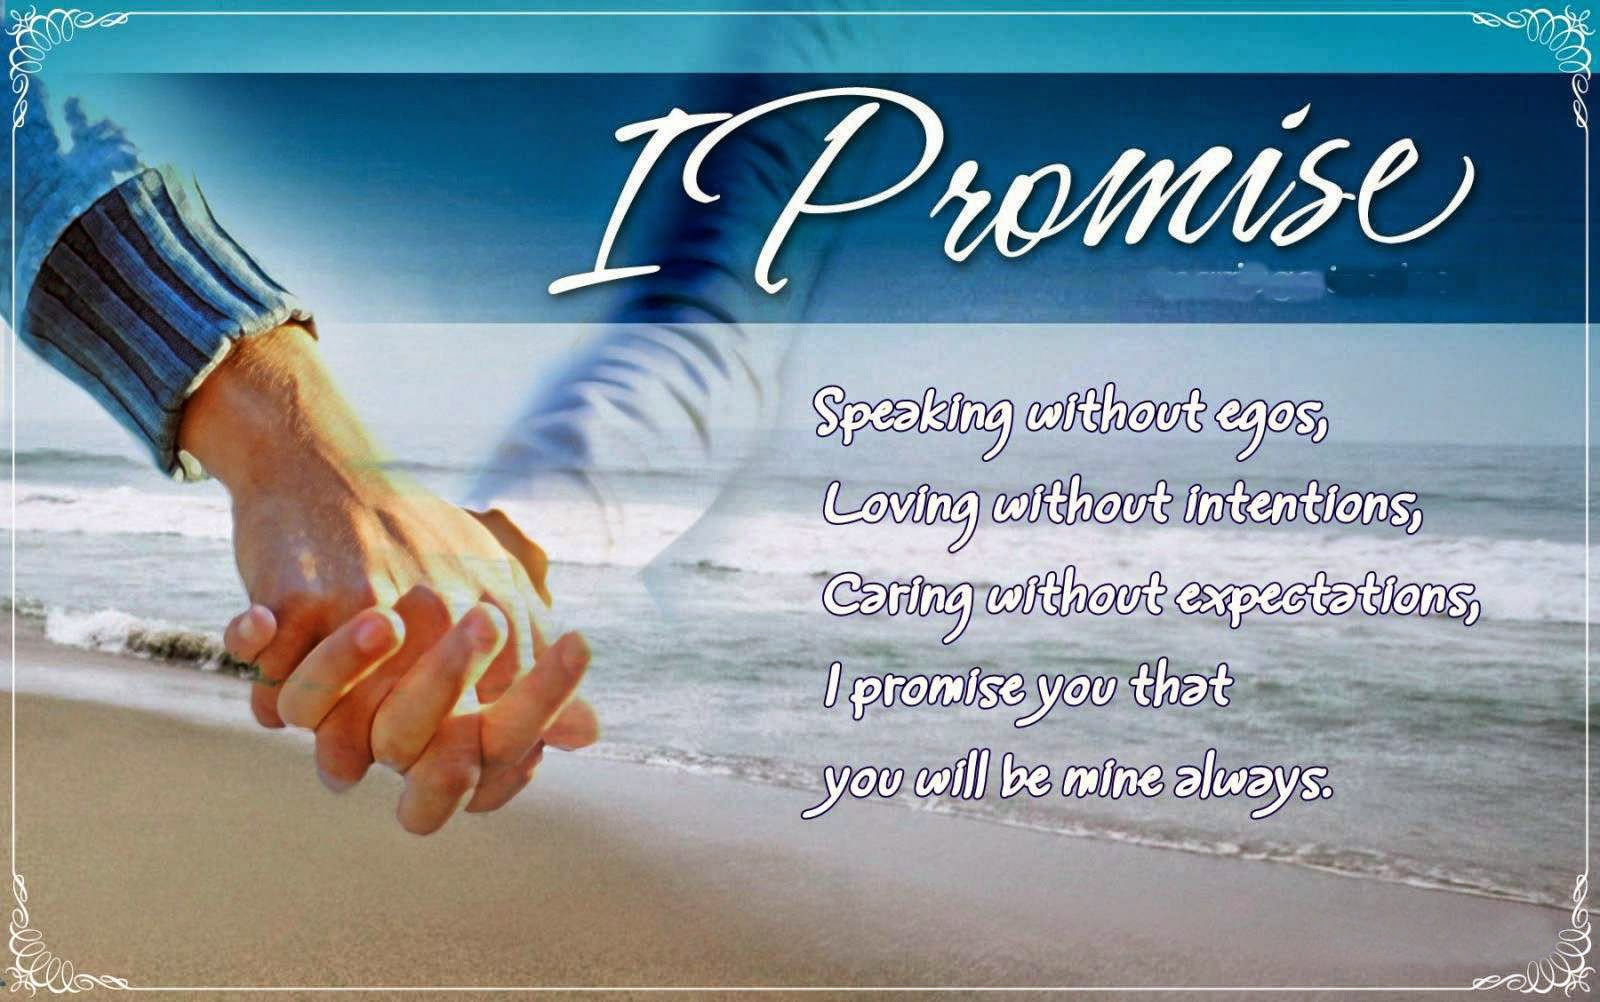 Happy Promise Day 2017 Image for Wife & Husband